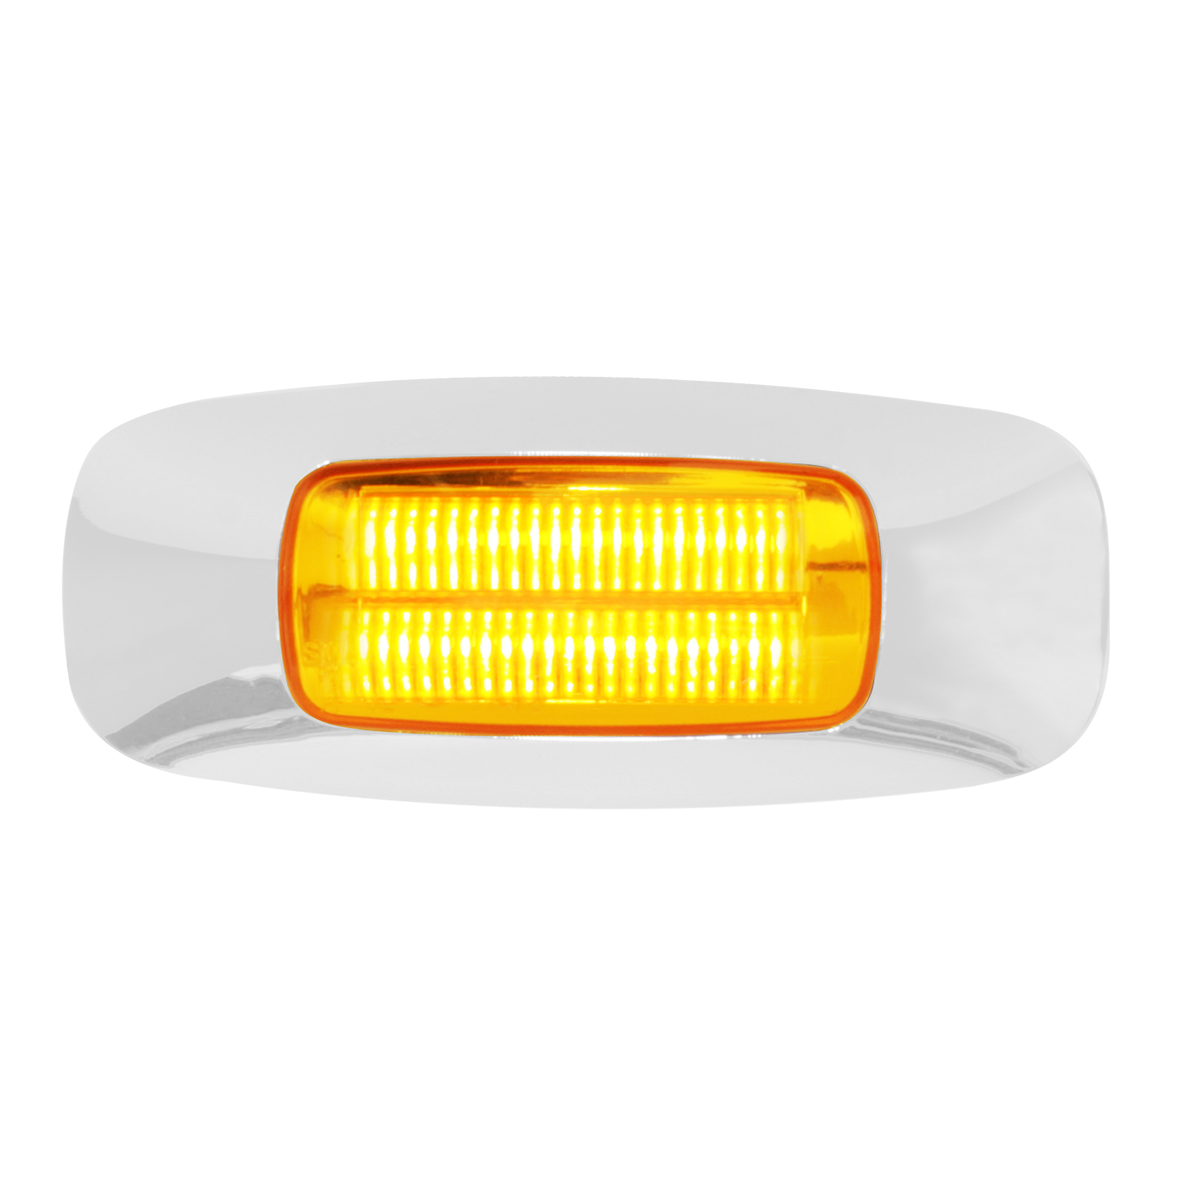 "74720 3-1/2"" Dual Function Rectangular Prime LED Marker Light"